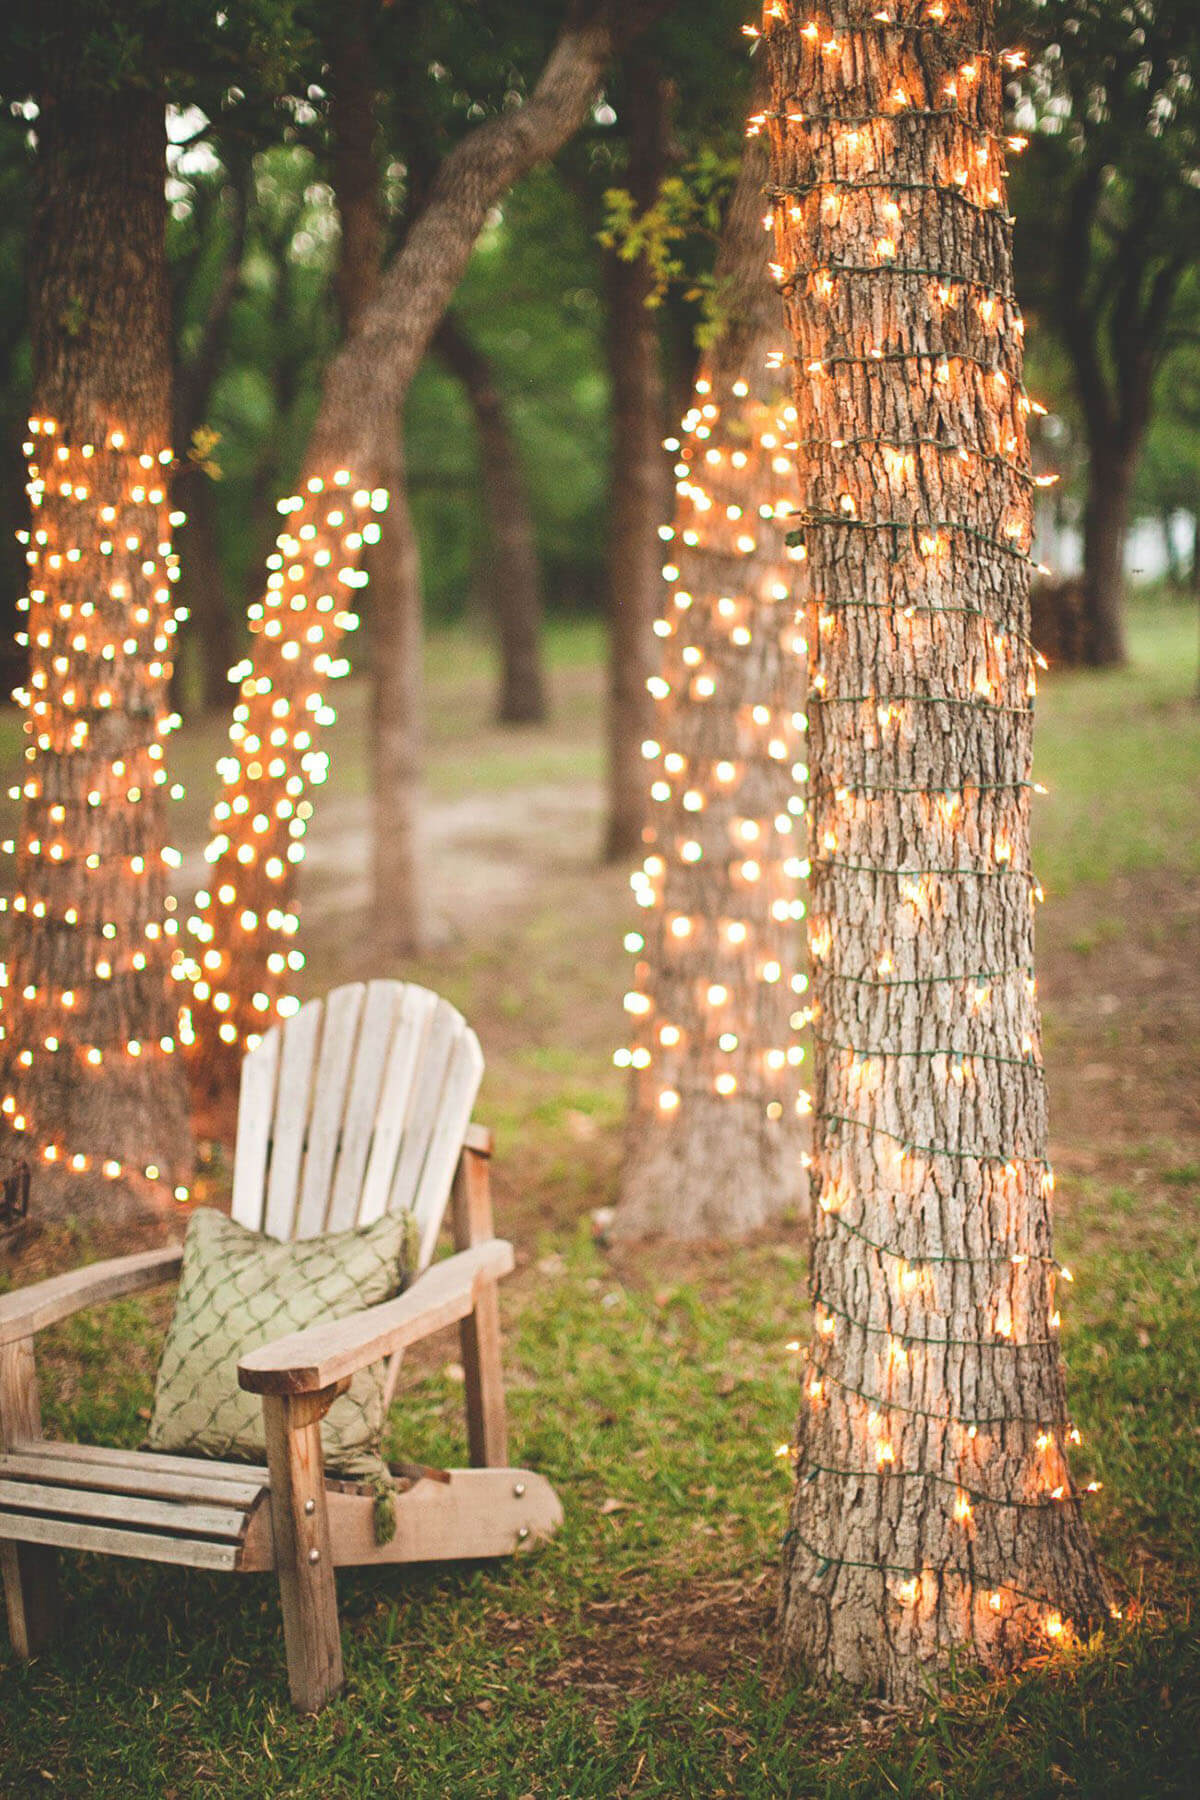 Tree Trunks Wrapped with Lights